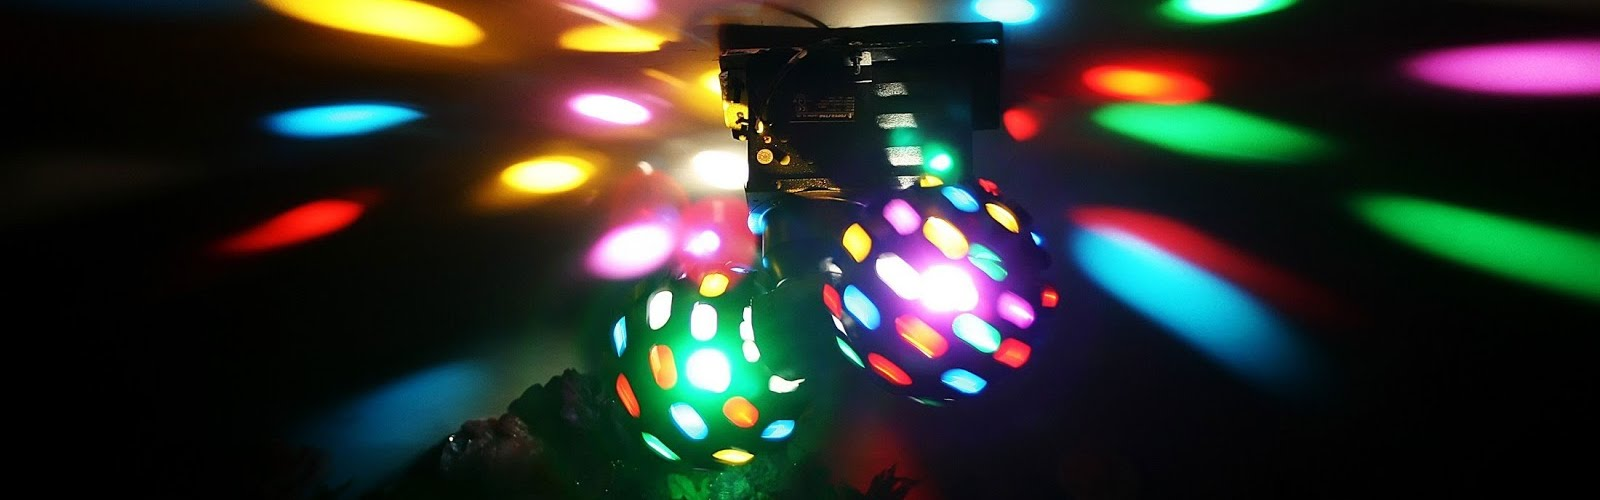 disco strobe lights